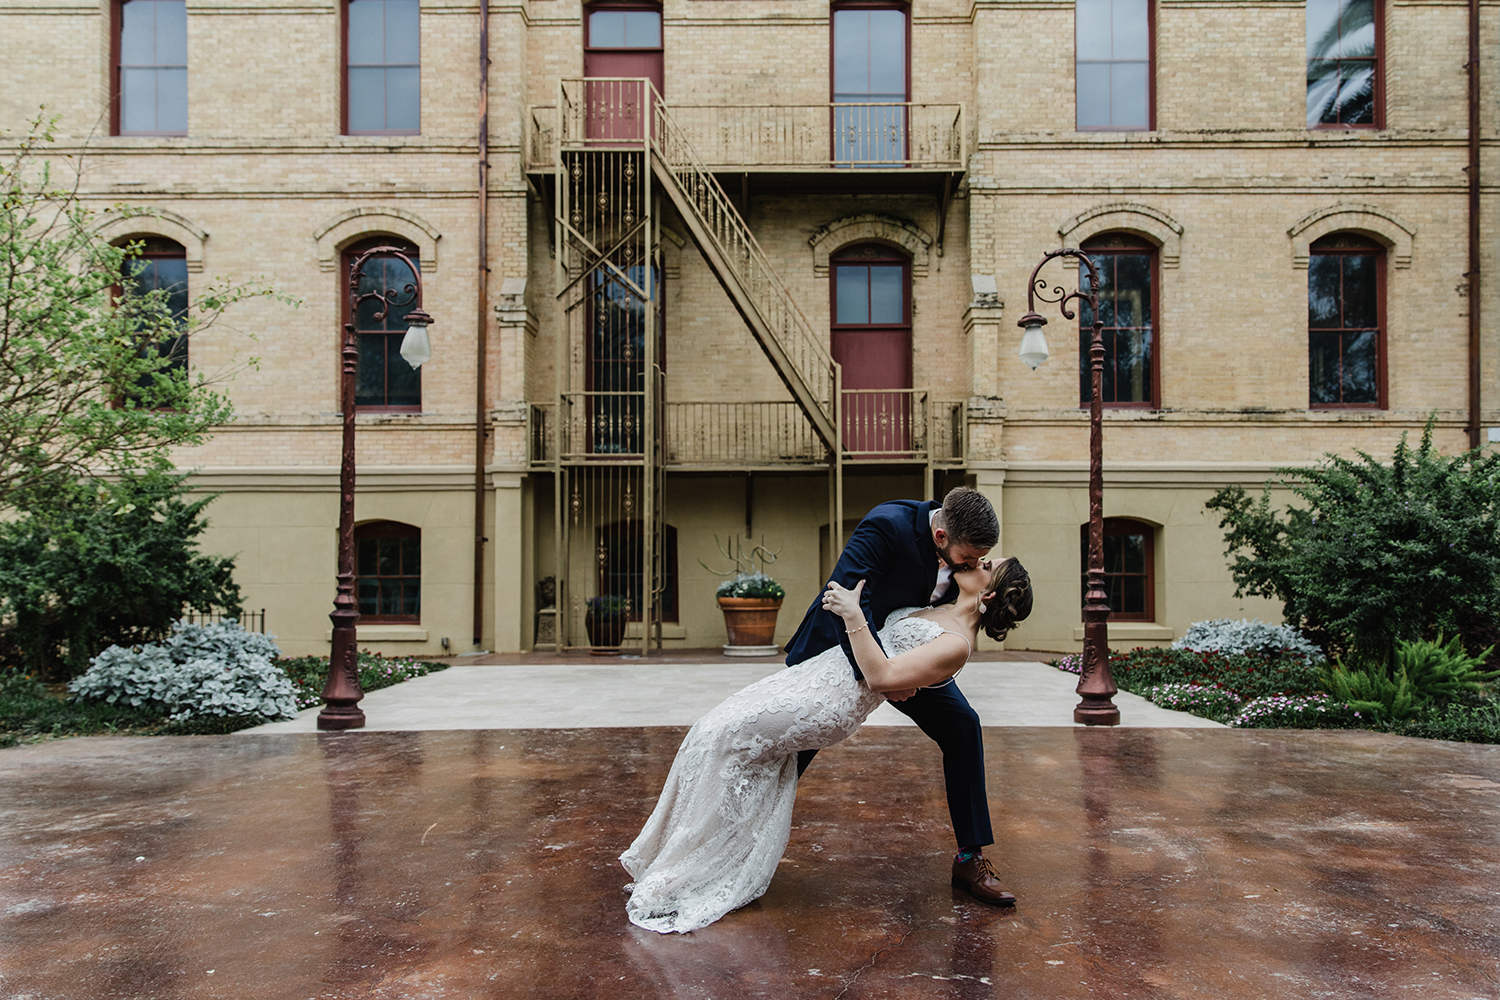 dance - outdoor wedding - dip - photo ops